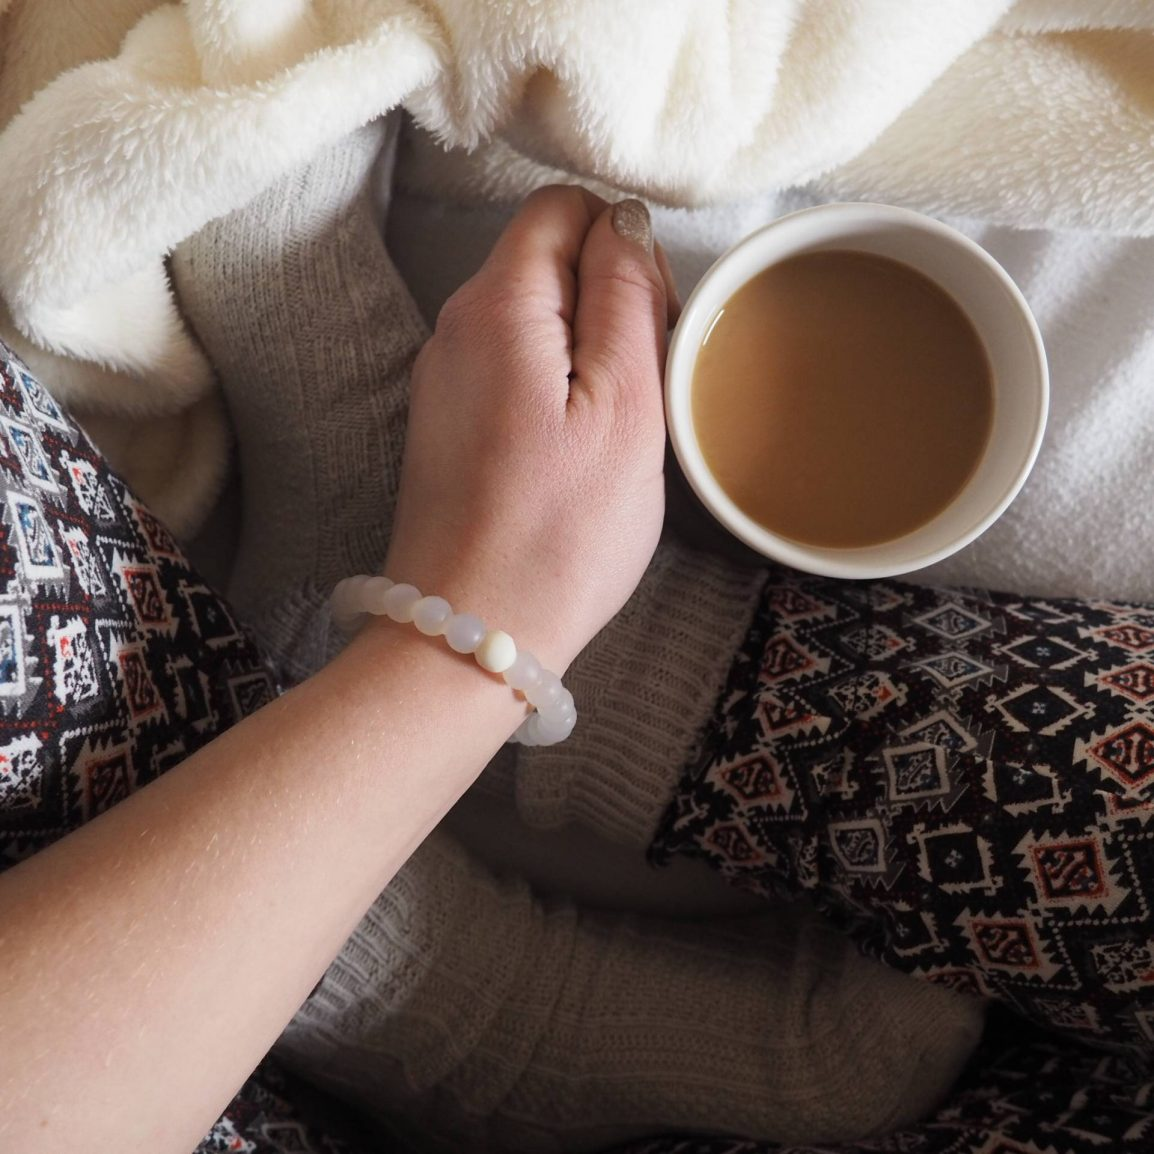 Girl sitting with a cup of tea with legs crossed and a blanket